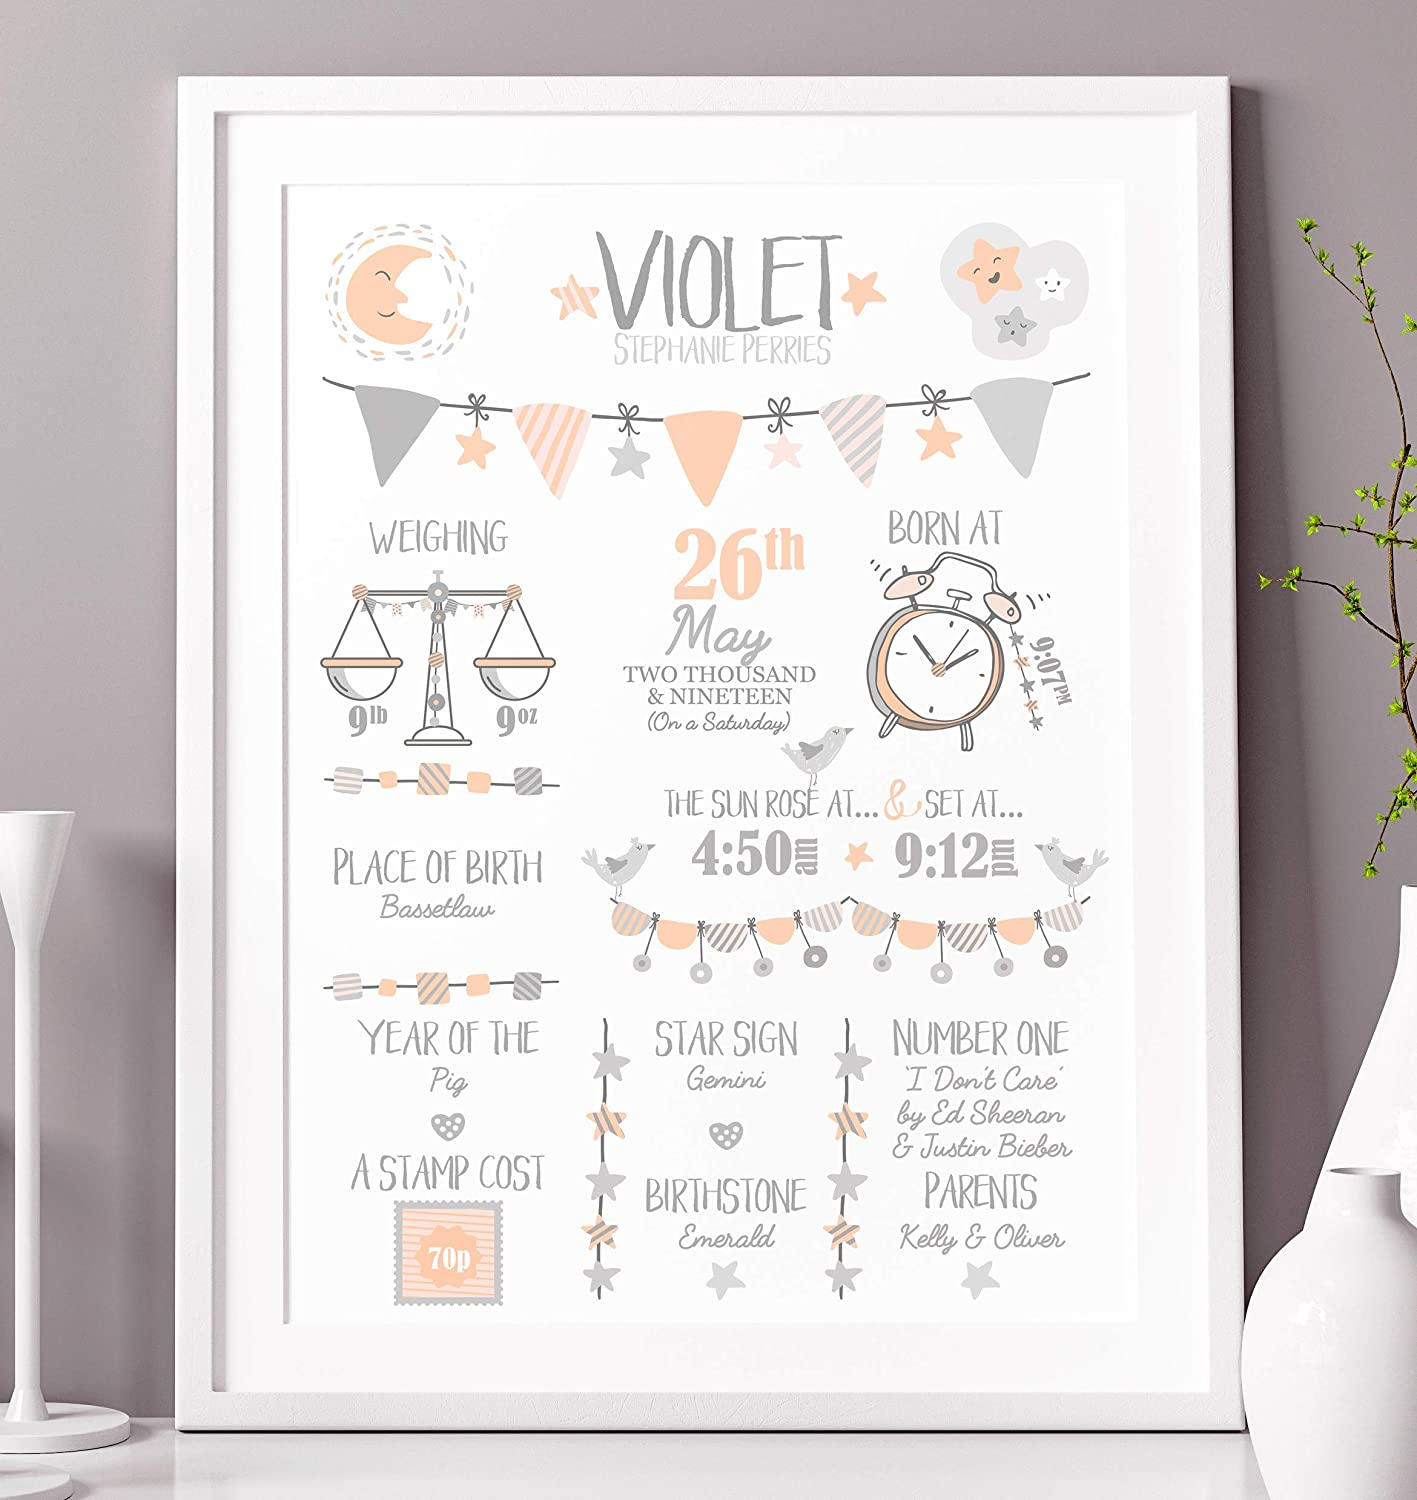 The Whistling Wren Bespoke Christening or Baptism Present Personalised Birth Print for Baby Boy Turquoise /& Yellow, Framed with Mount - White Frame New Baby Gift Birth Details Stats Picture